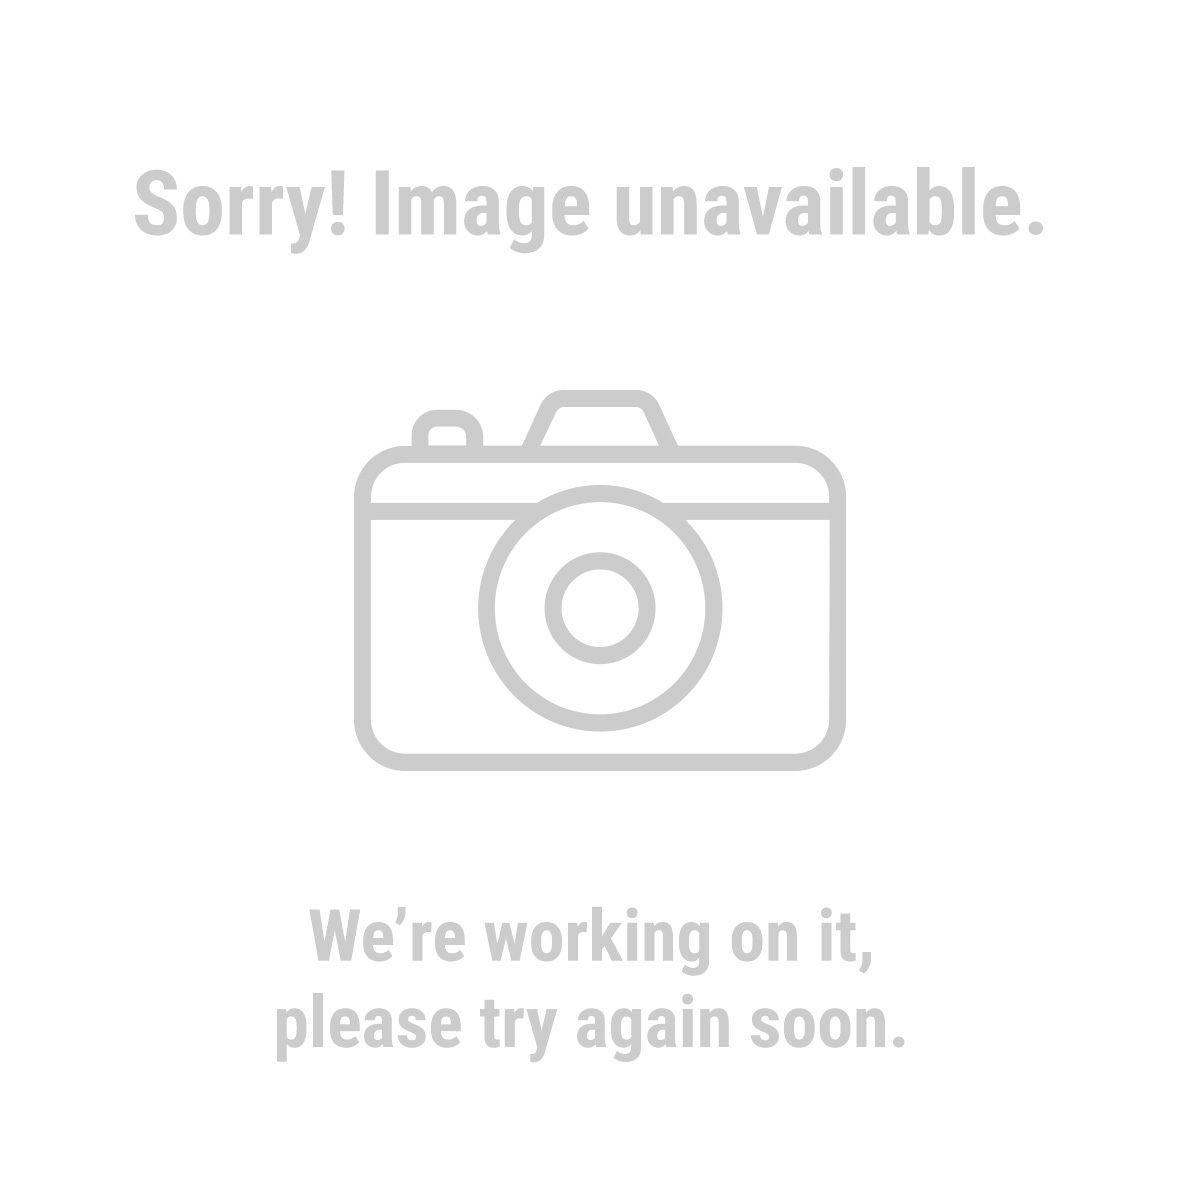 Central Pneumatic Earthquake 62746 1/2 in. Professional Air Impact Wrench With 2 in. Extended Anvil